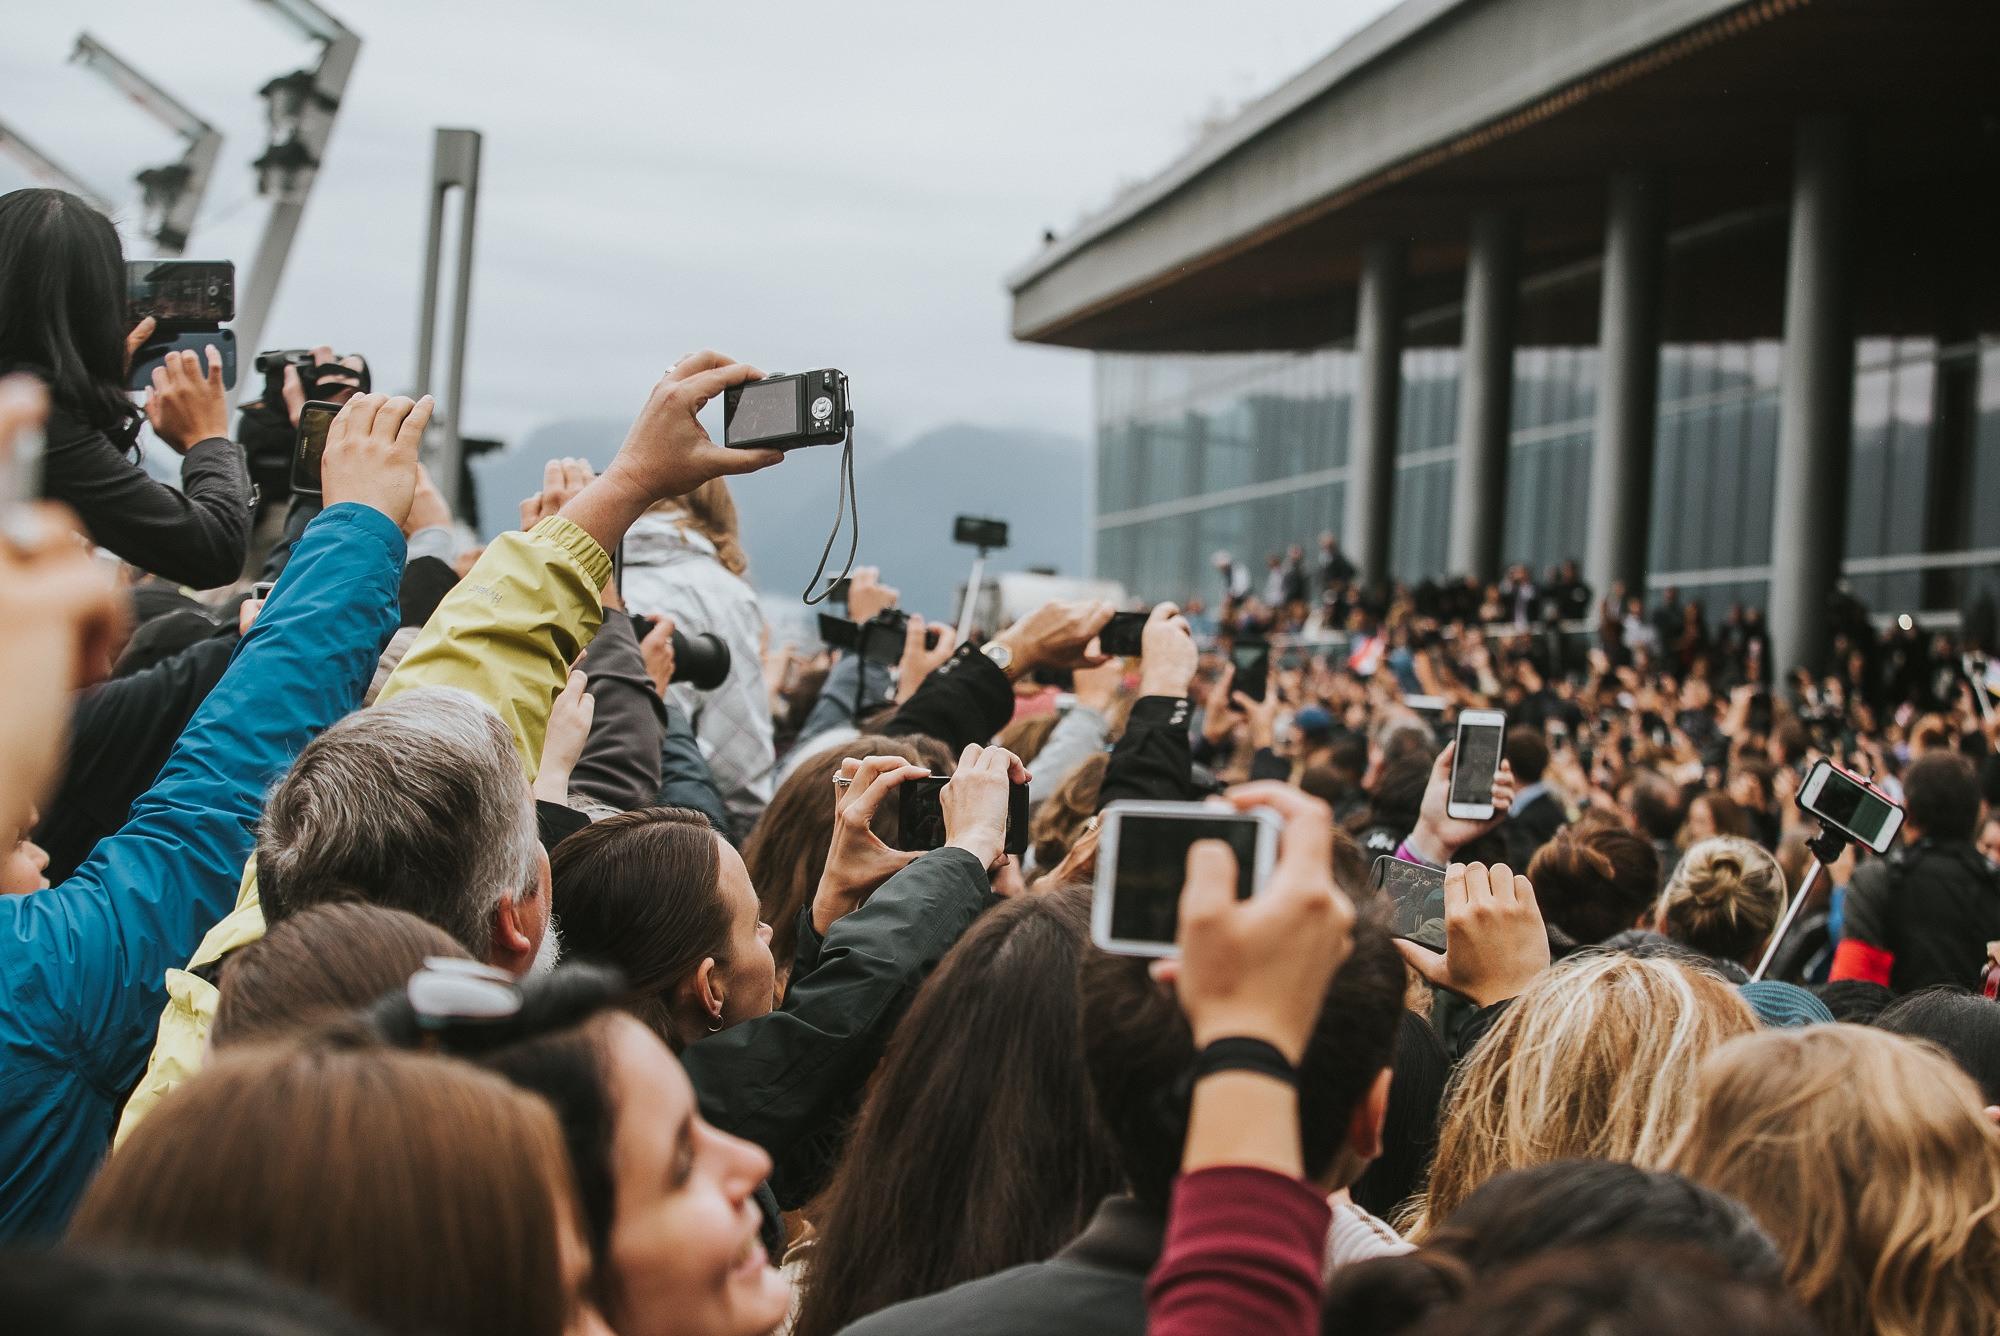 You couldn't move for cameras at Will and Kate's arrival in Vancouver (By Alaina Michelle of AntiSocial Media)